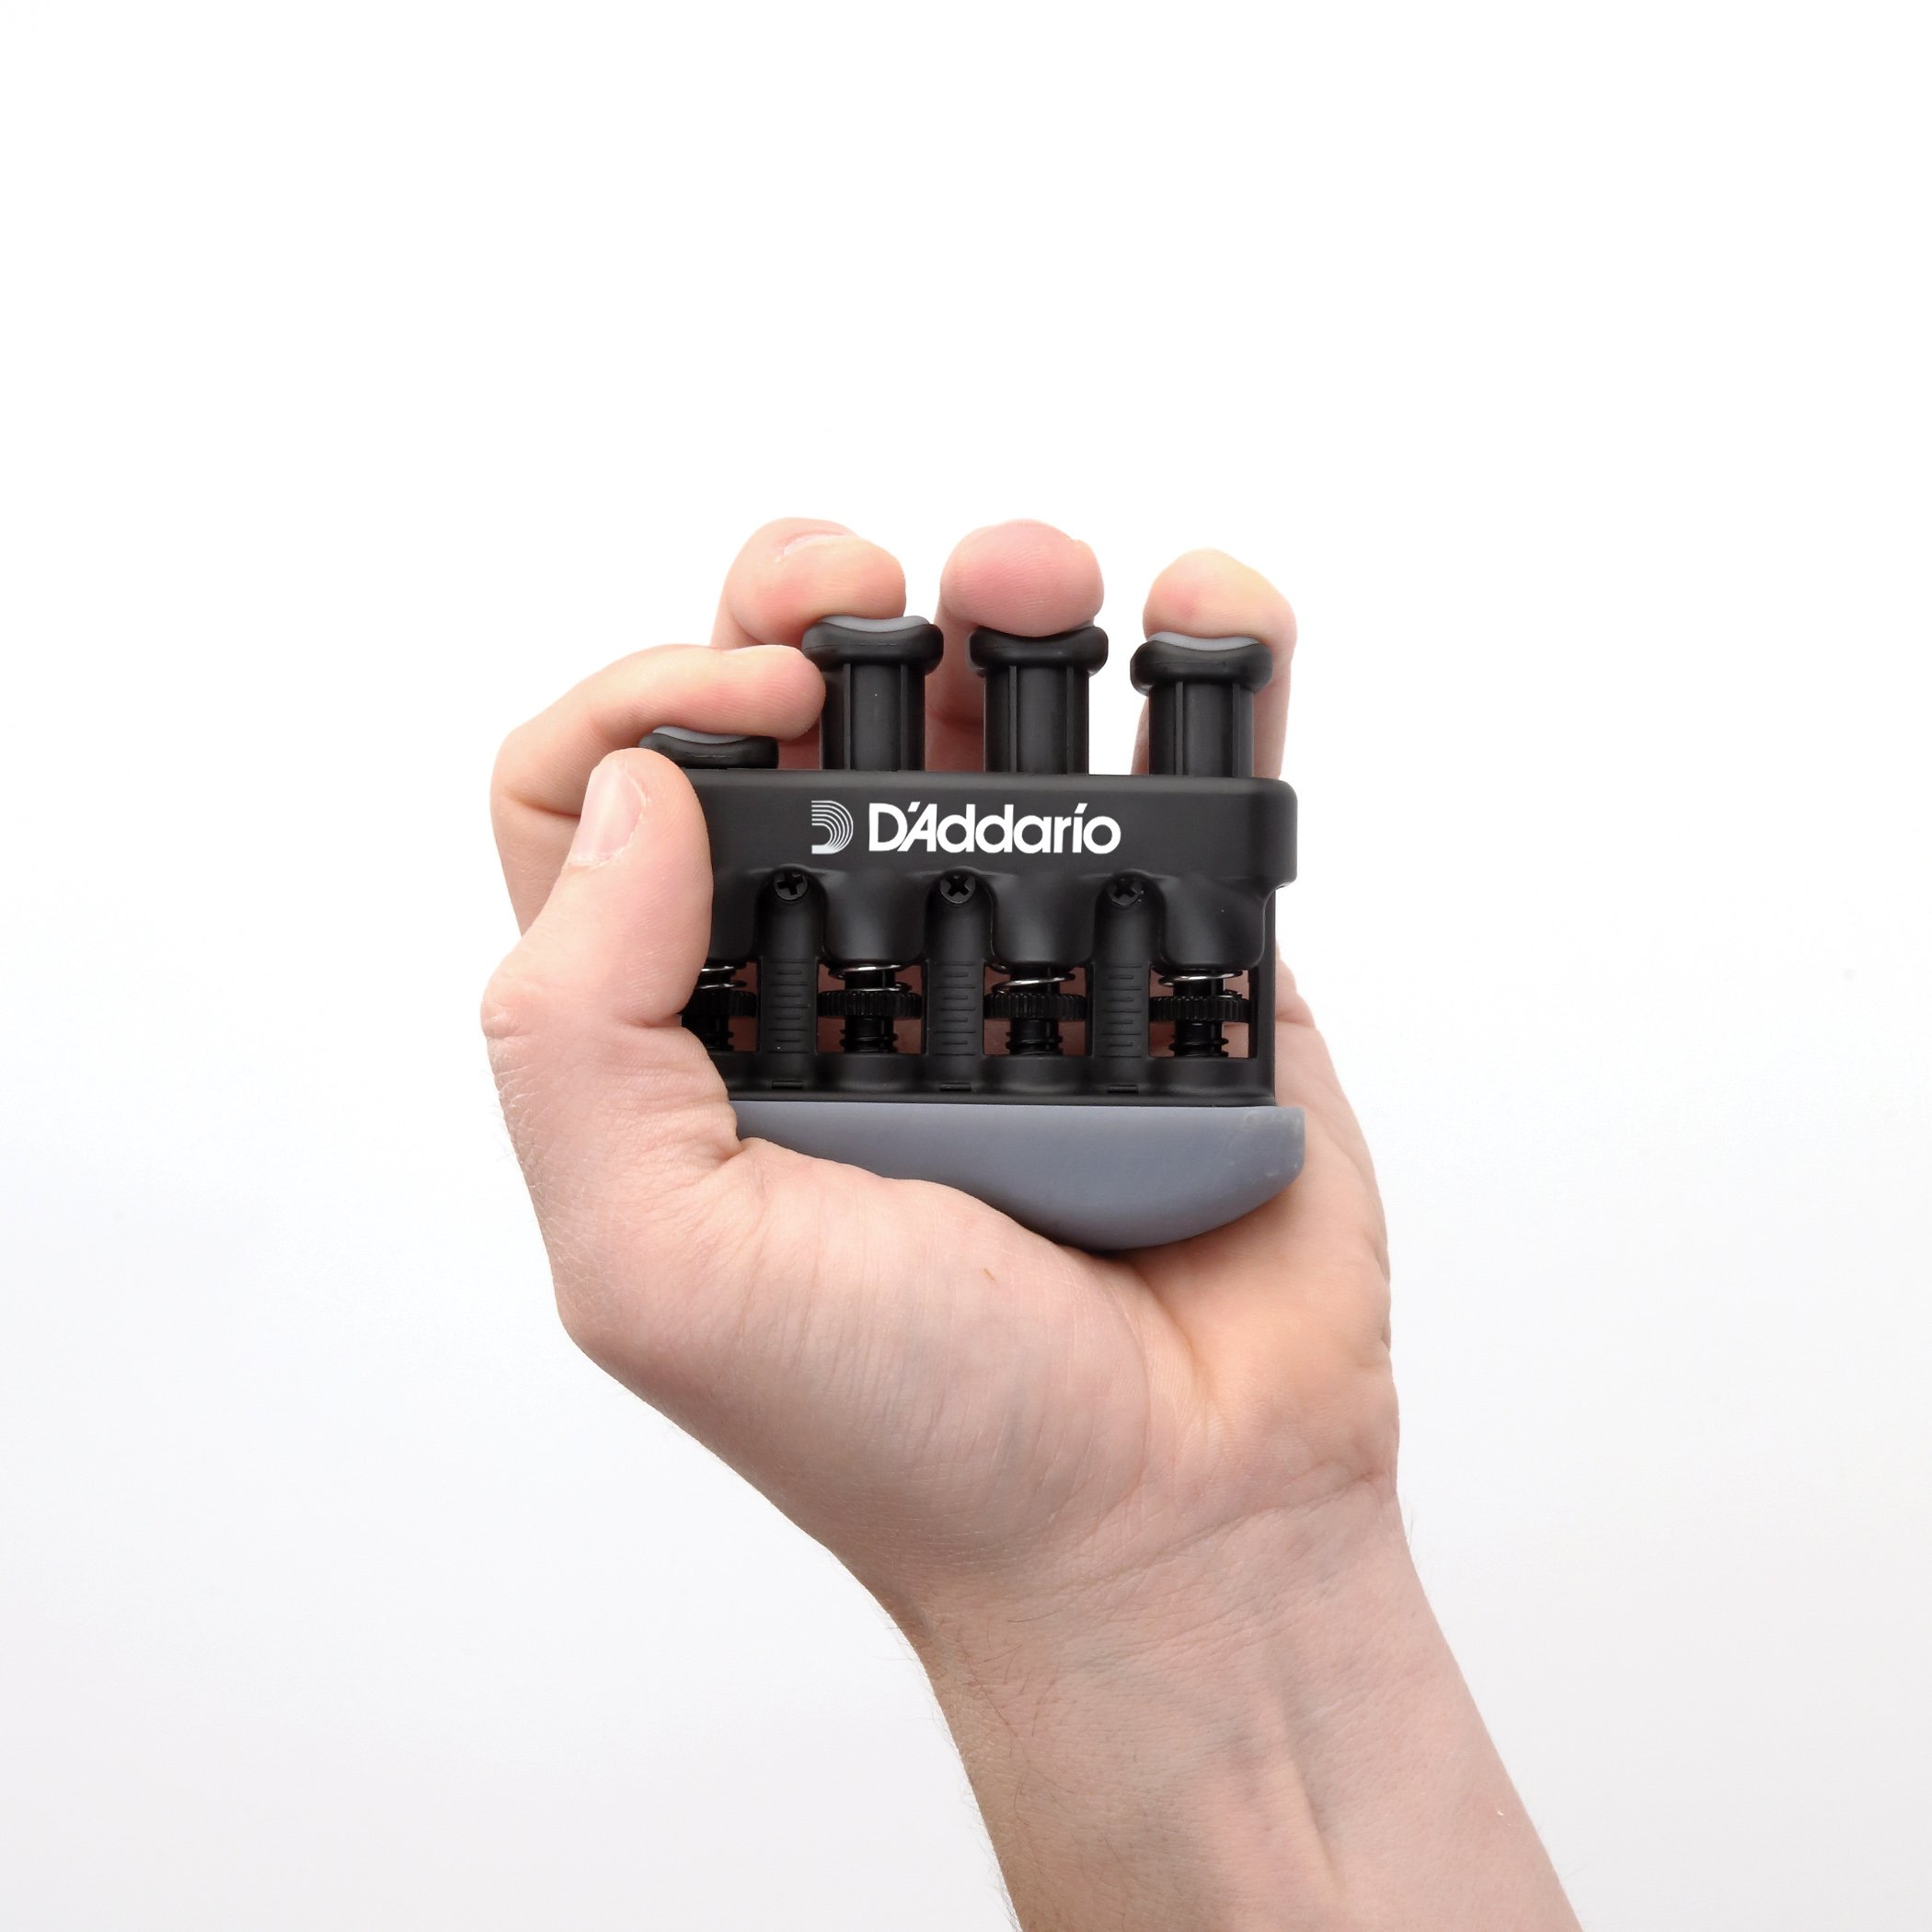 D'Addario Woodwinds WW-PG-01 Practice Grip Instrumental Hand Exerciser by D'Addario Woodwinds (Image #3)